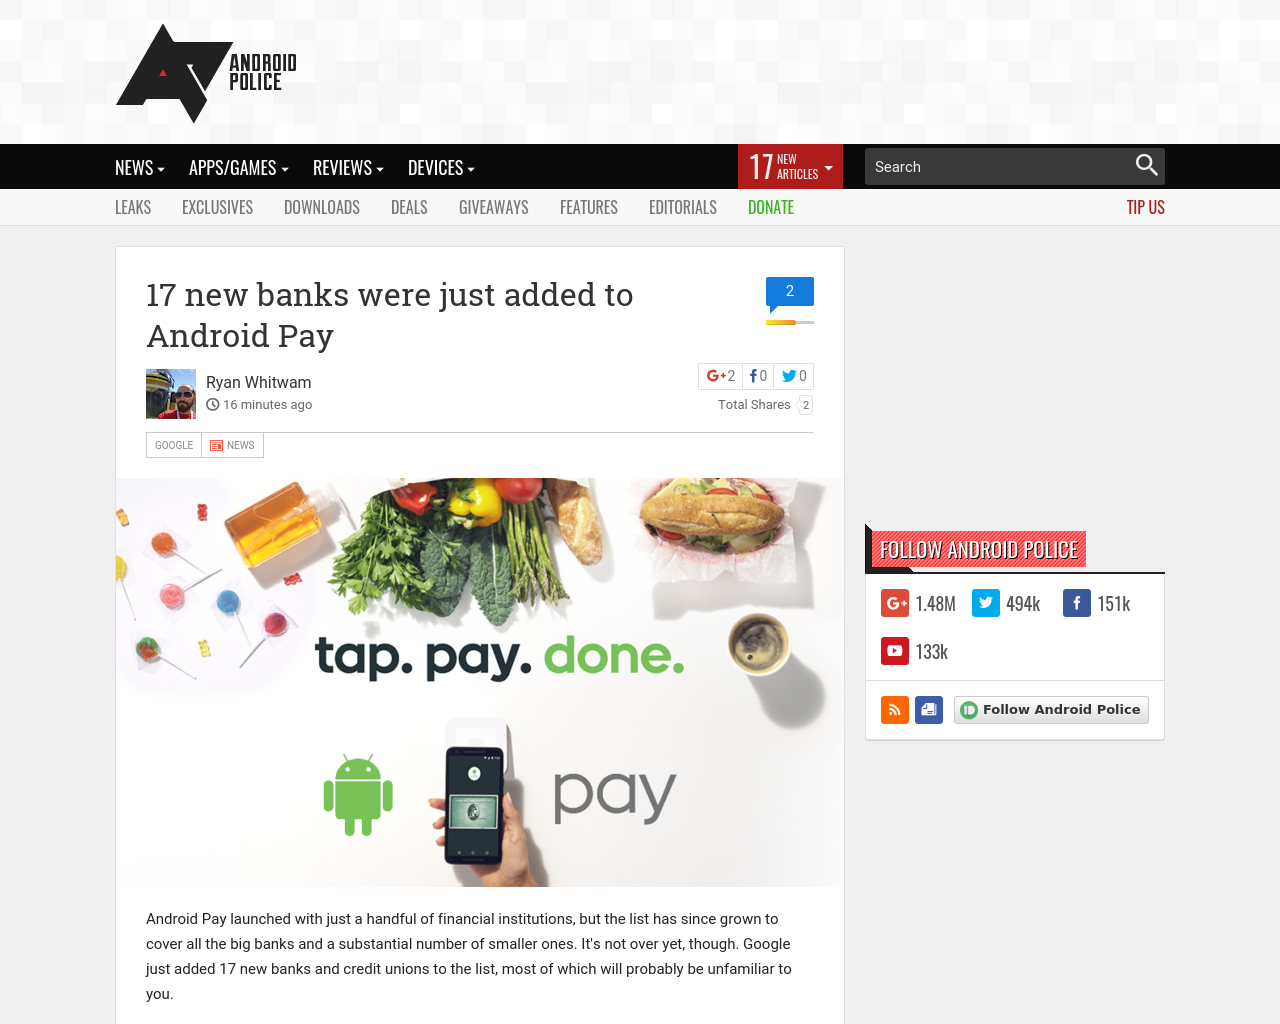 Androidpolice-Advertising-Reviews-Pricing